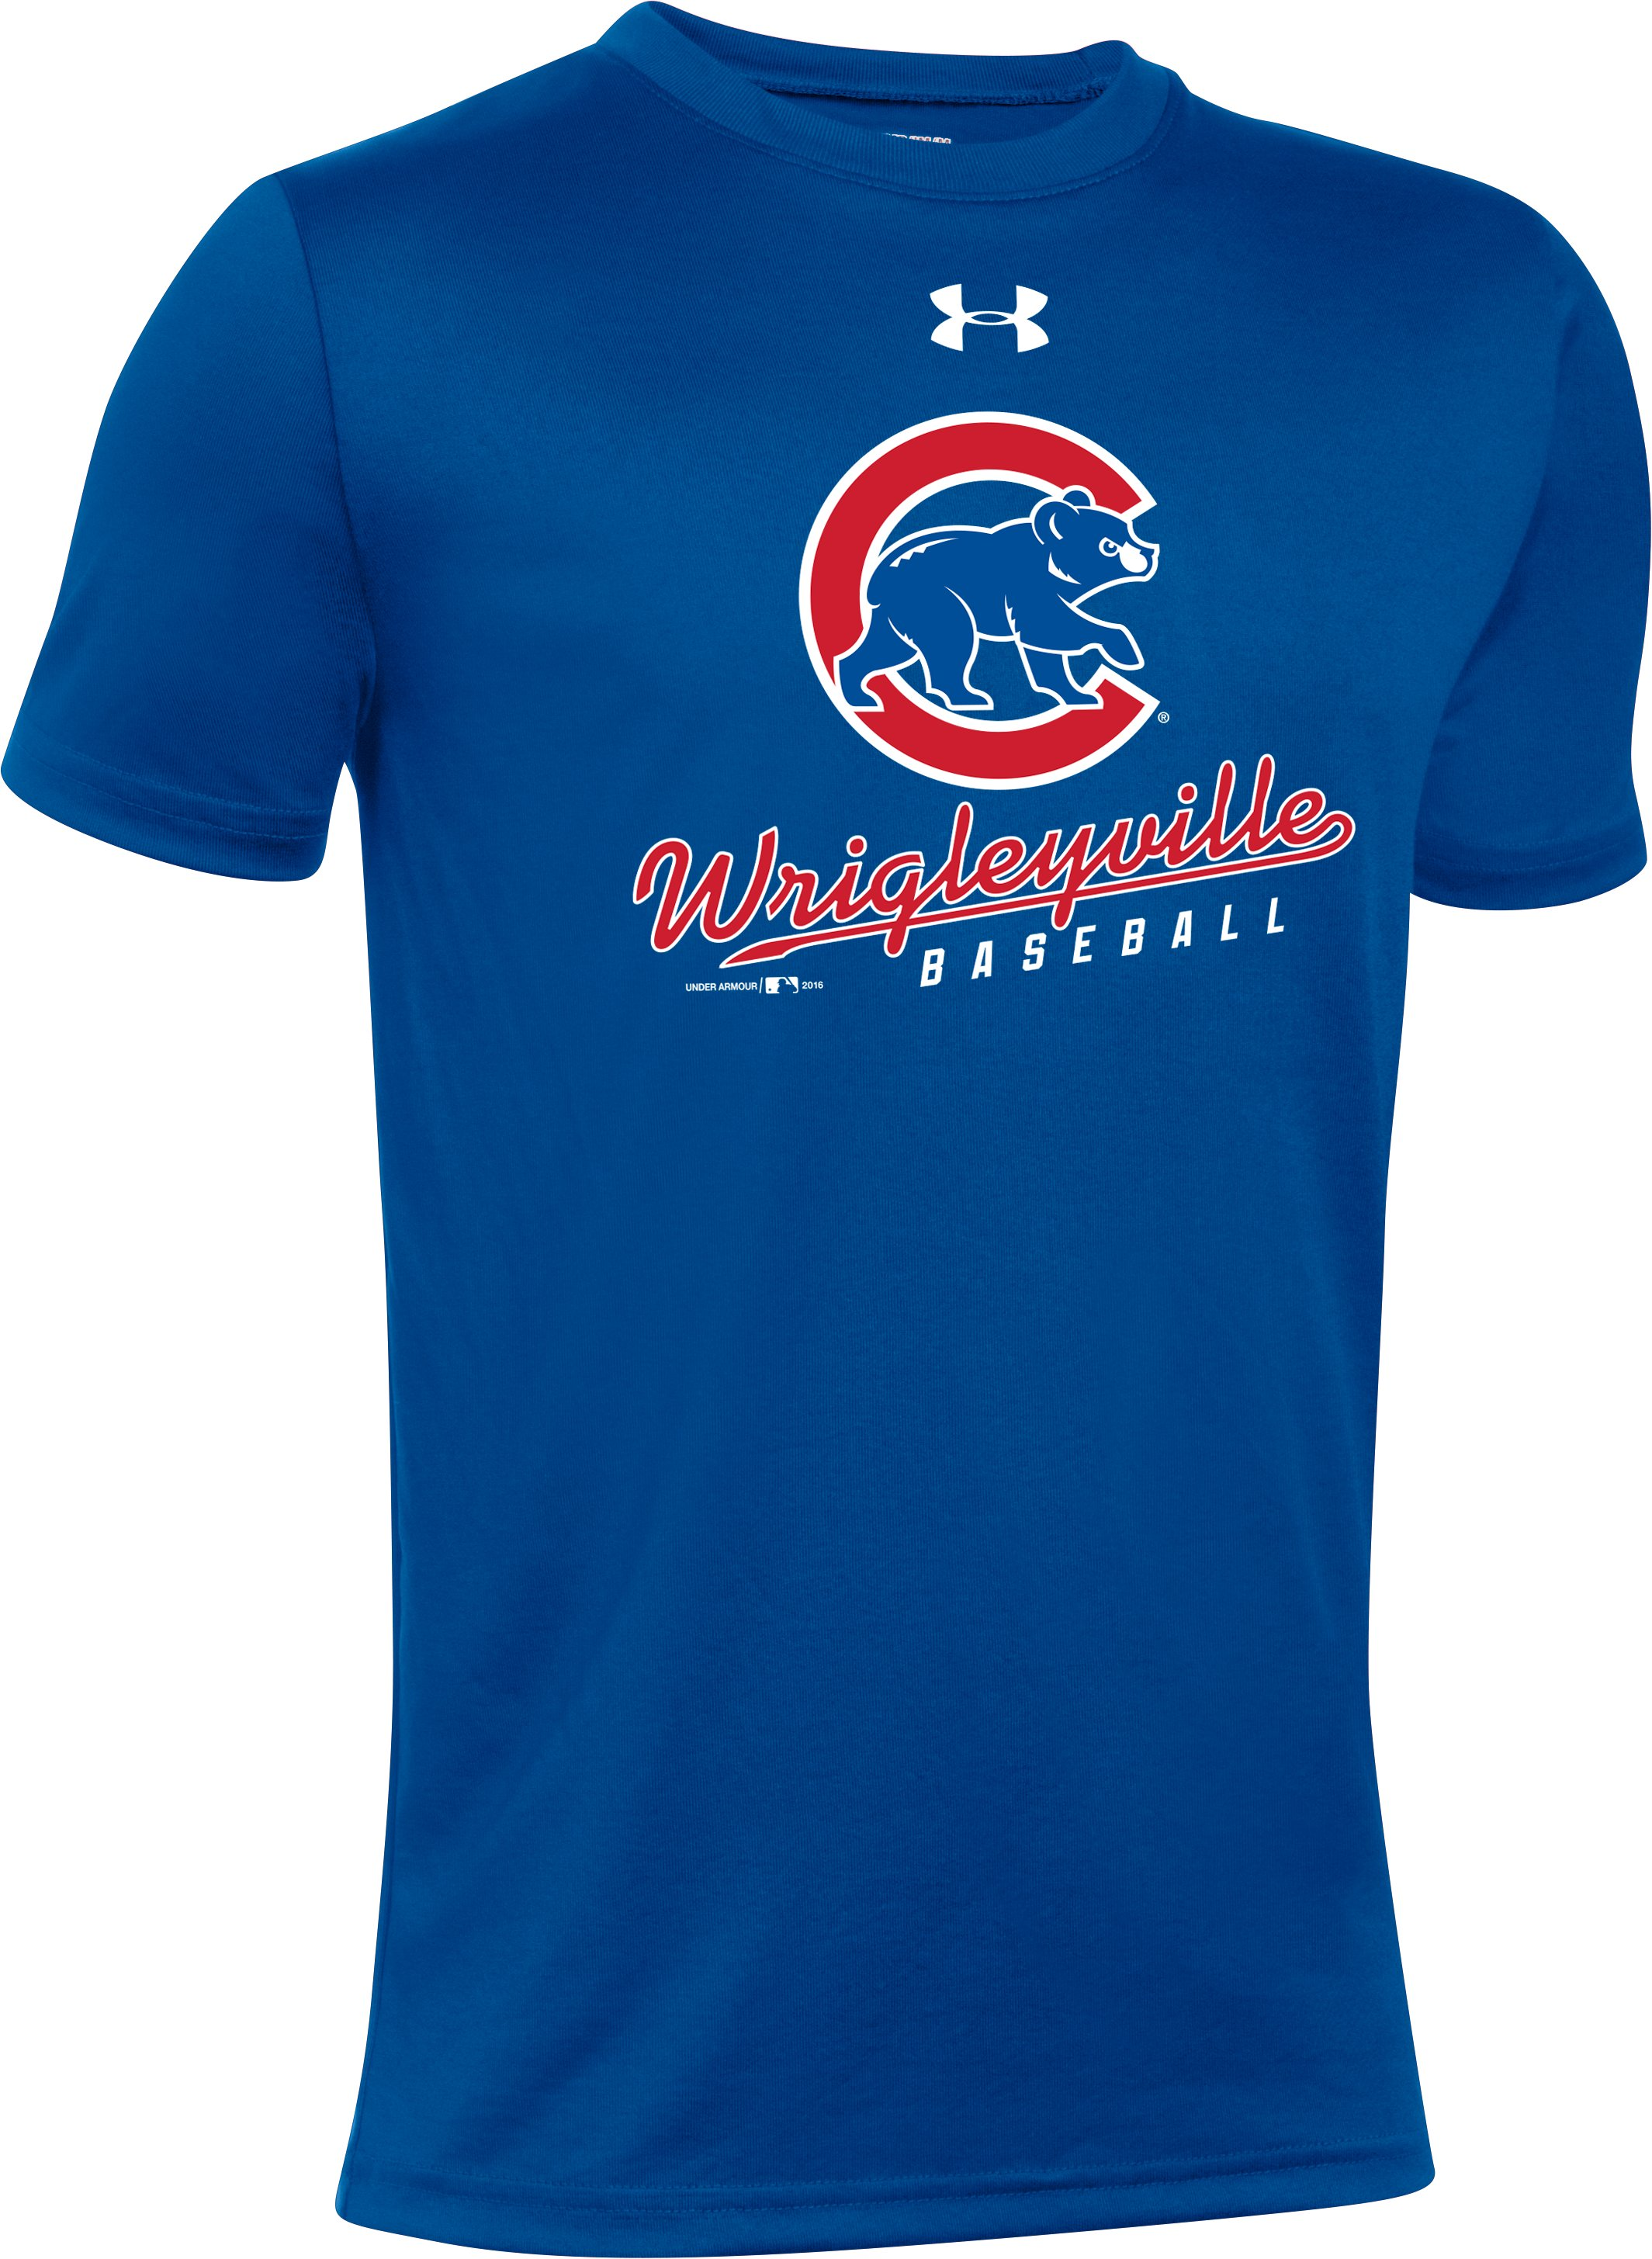 Kids' Chicago Cubs Wrigleyville T-Shirt, Royal, undefined